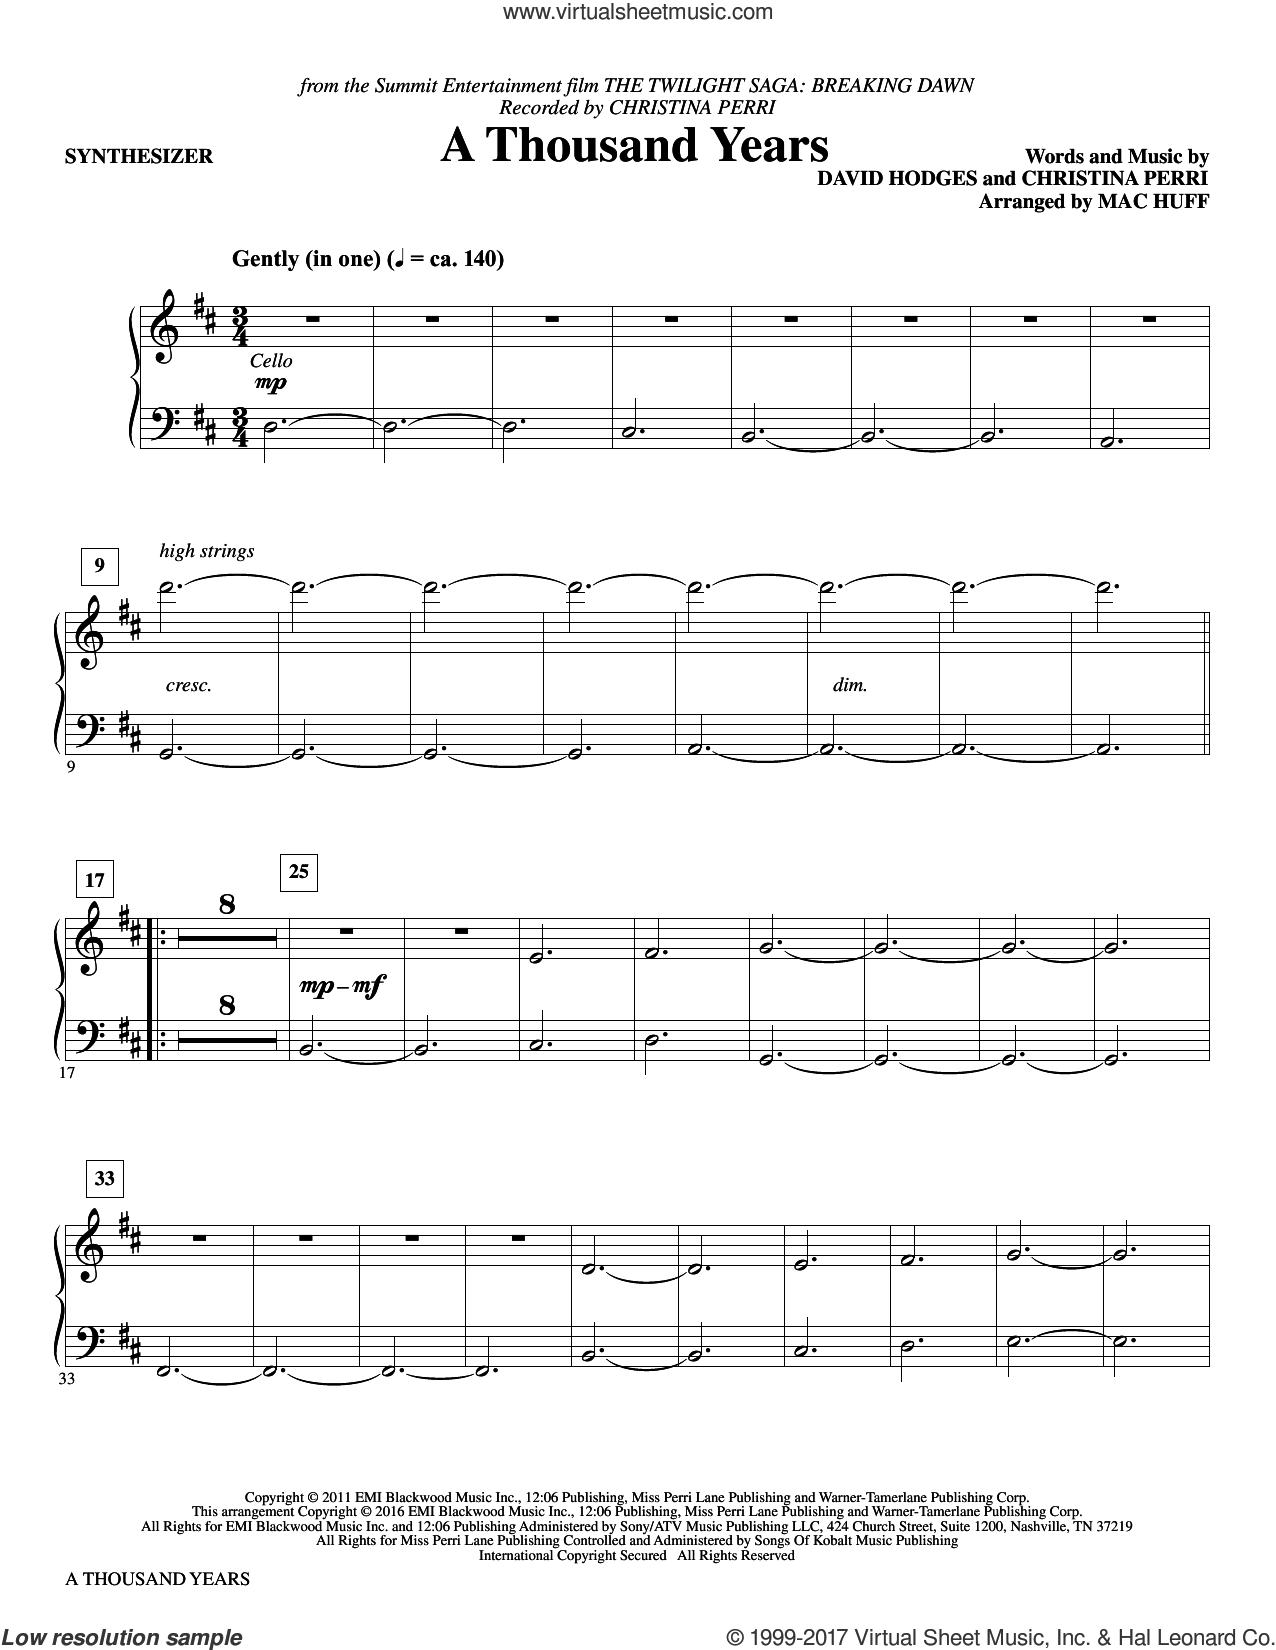 A Thousand Years (arr. Mac Huff) (complete set of parts) sheet music for orchestra/band by Mac Huff, Christina Perri and David Hodges, intermediate skill level